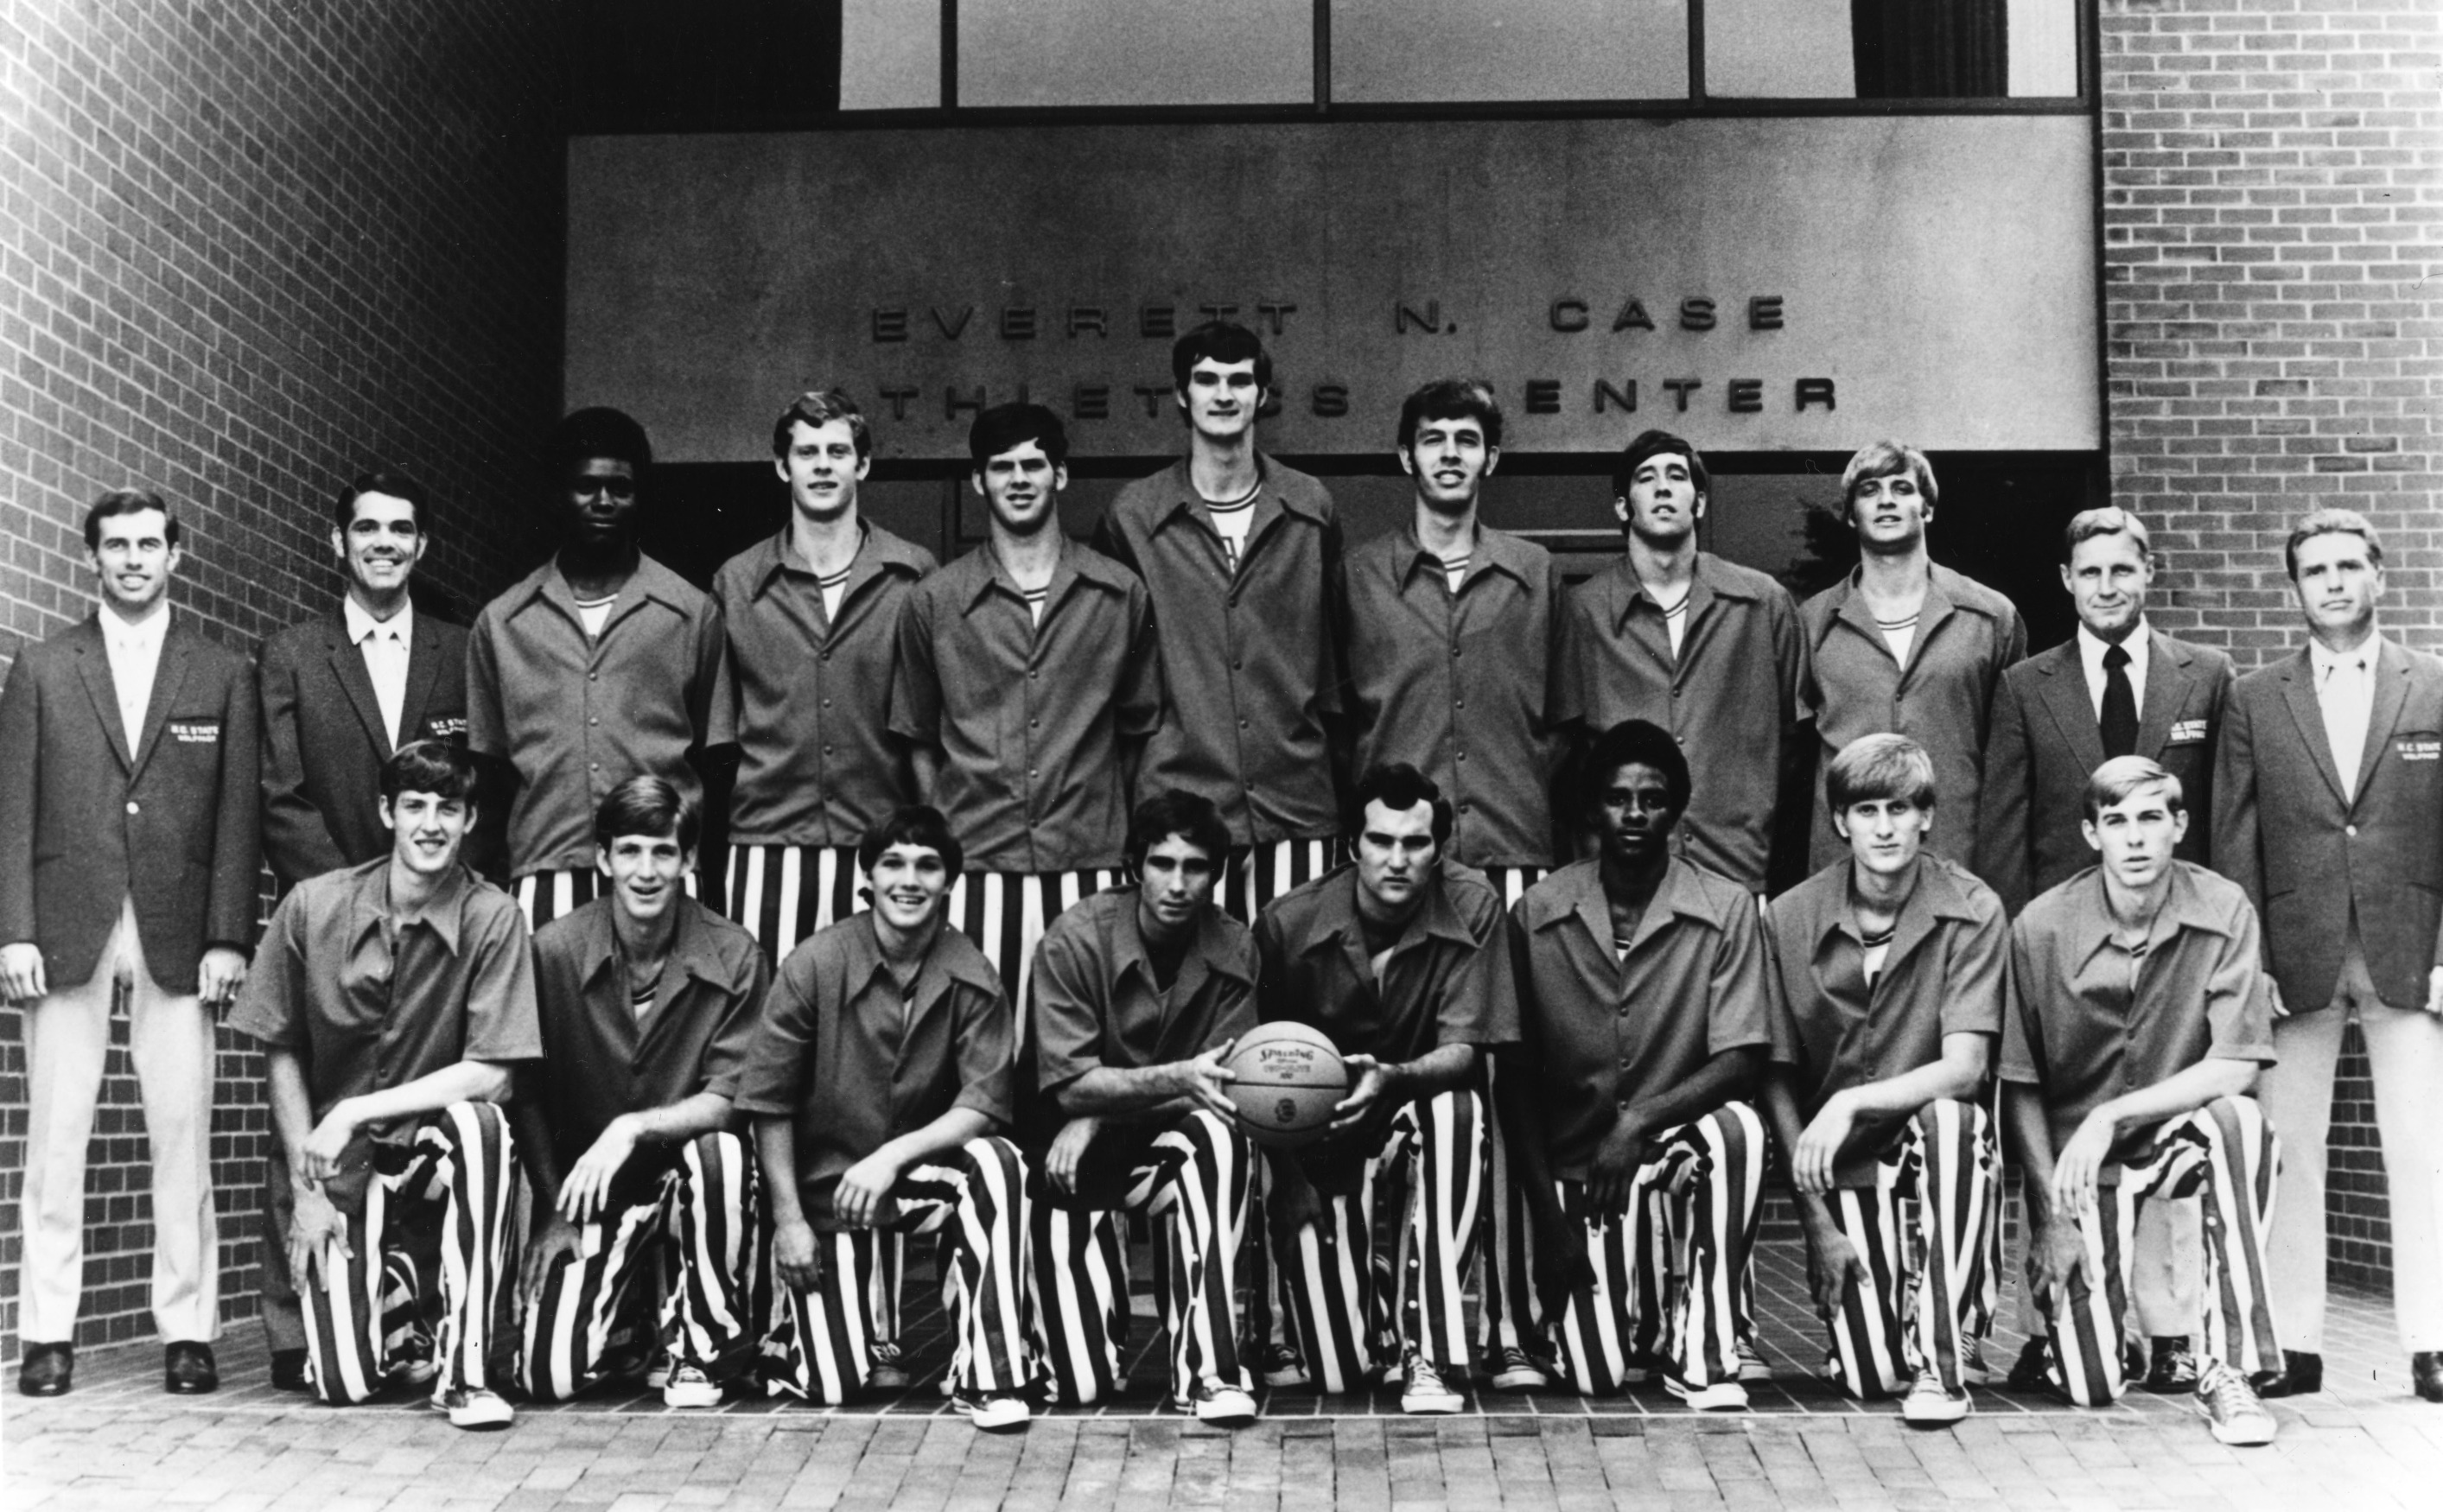 1972-1973 N.C. State University basketball team